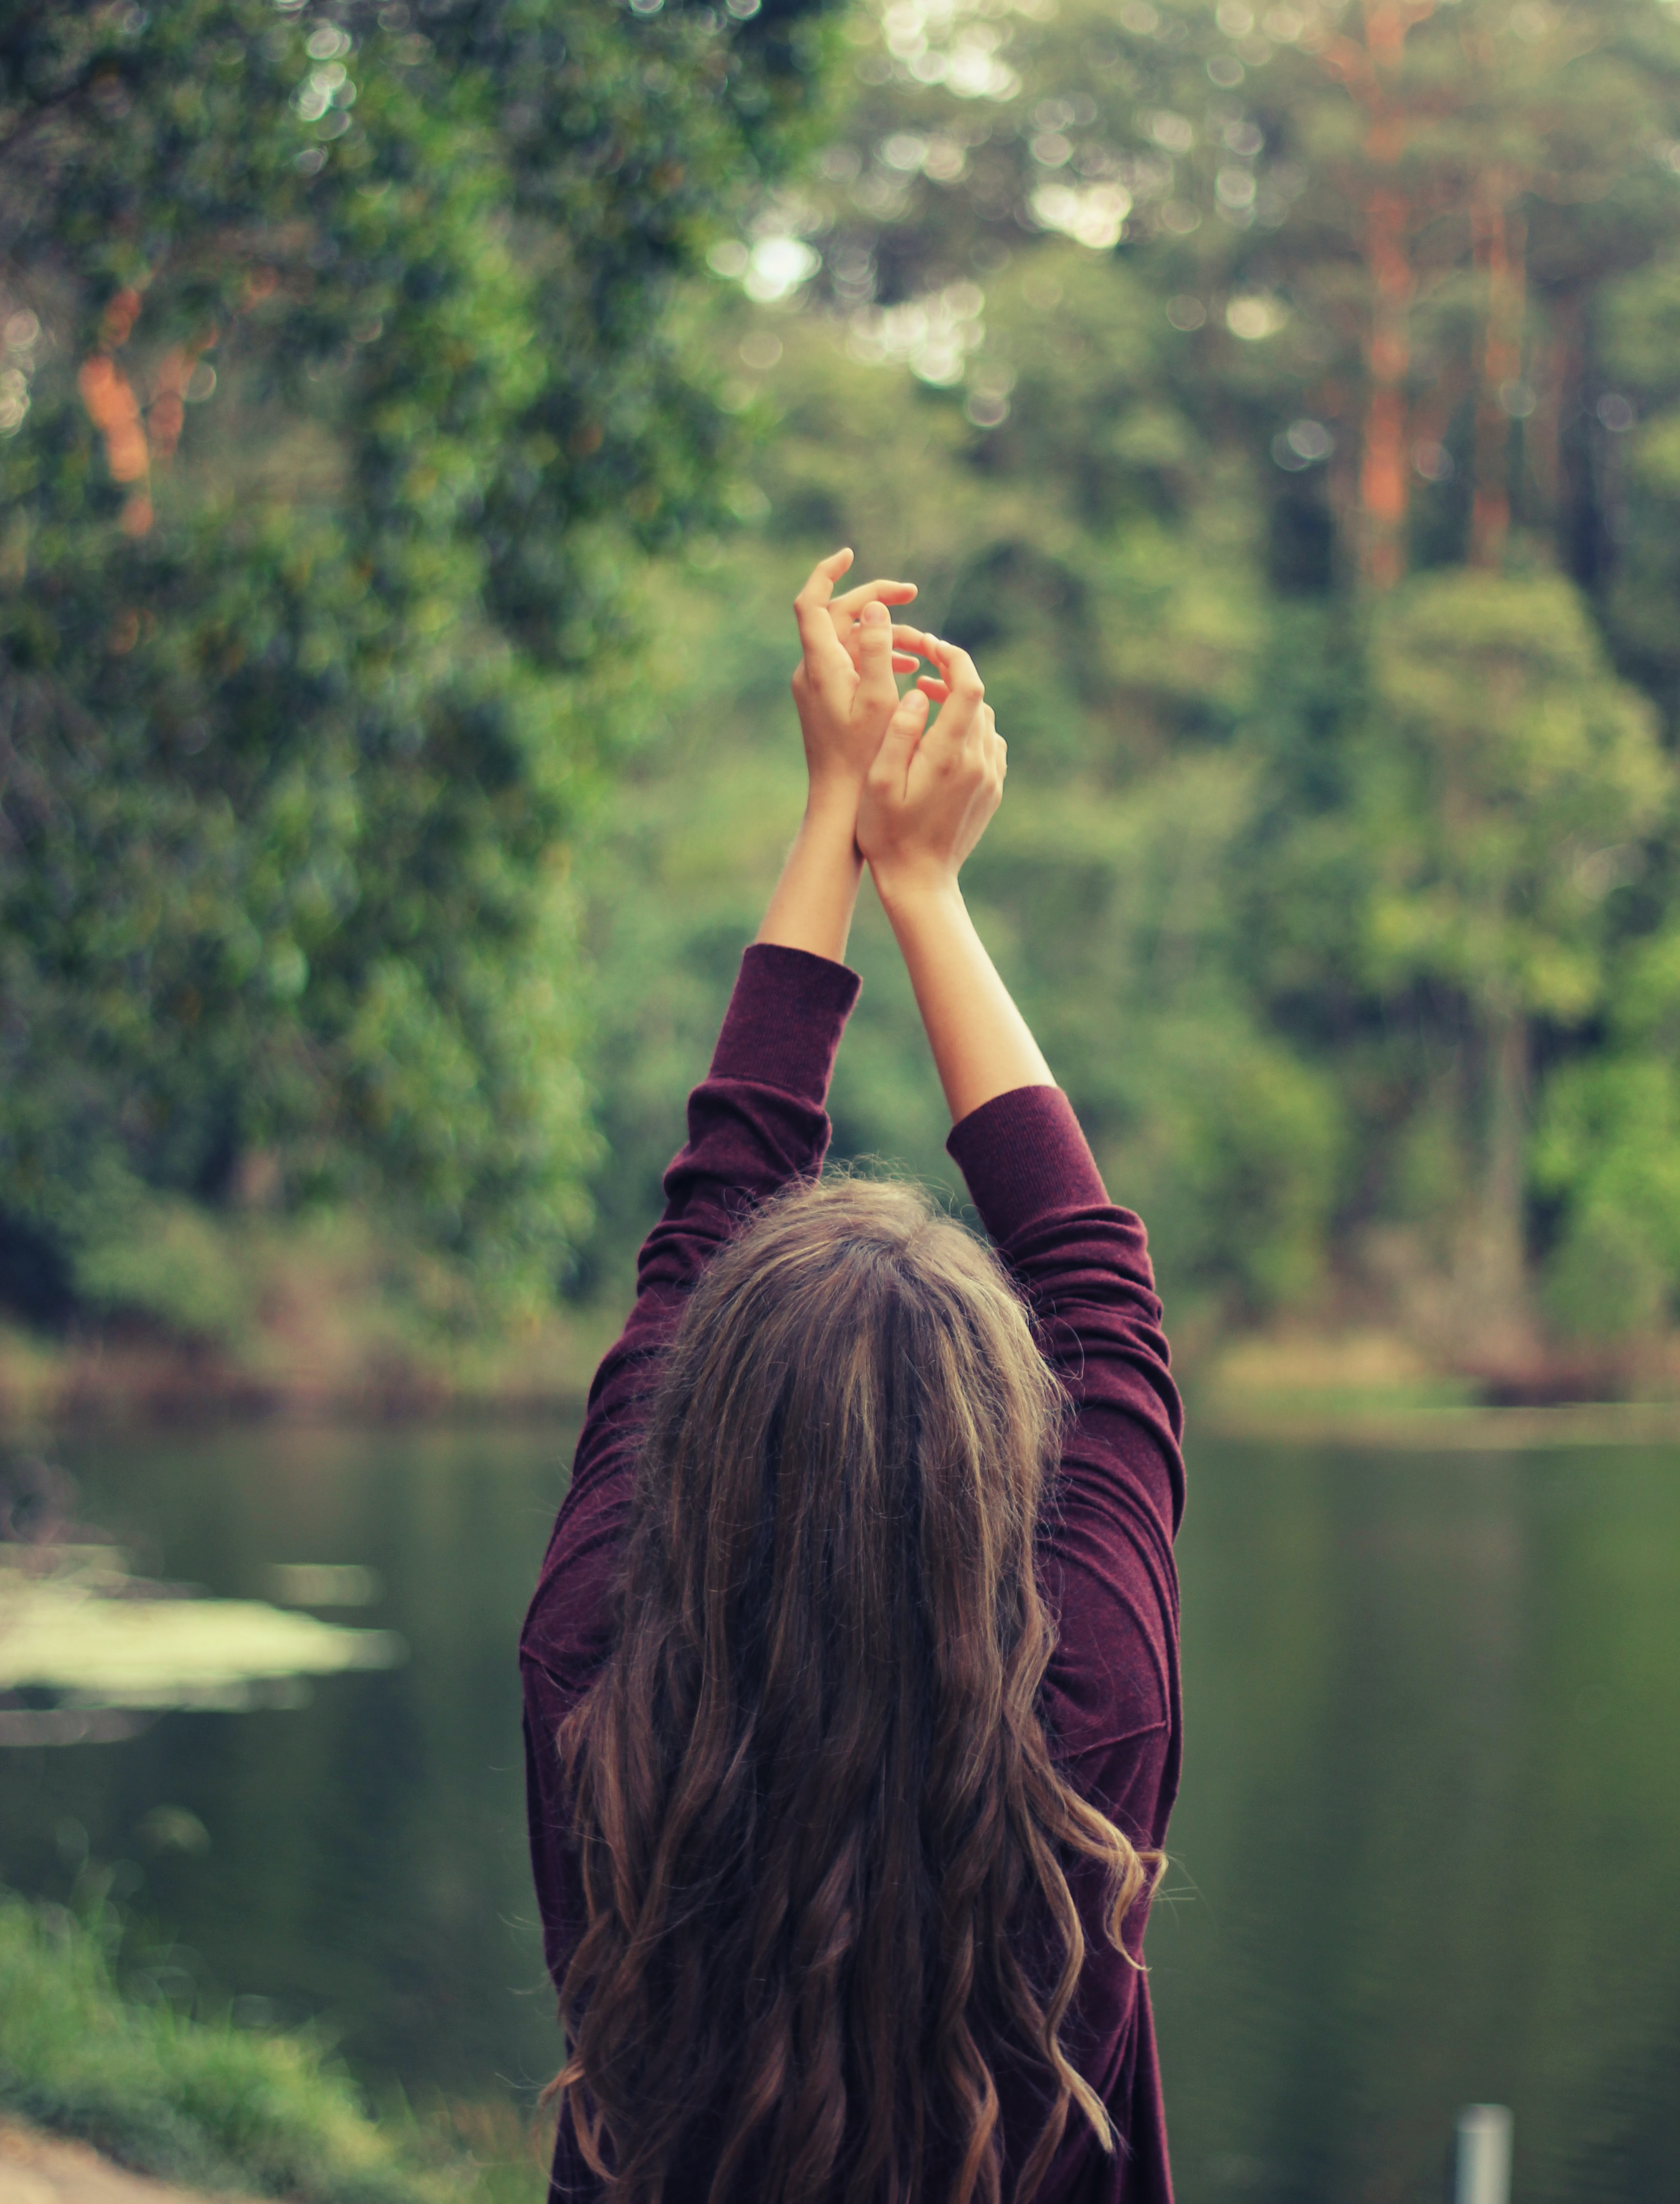 A woman in a purple sweater holds her arms in the air outdoors aside a lake